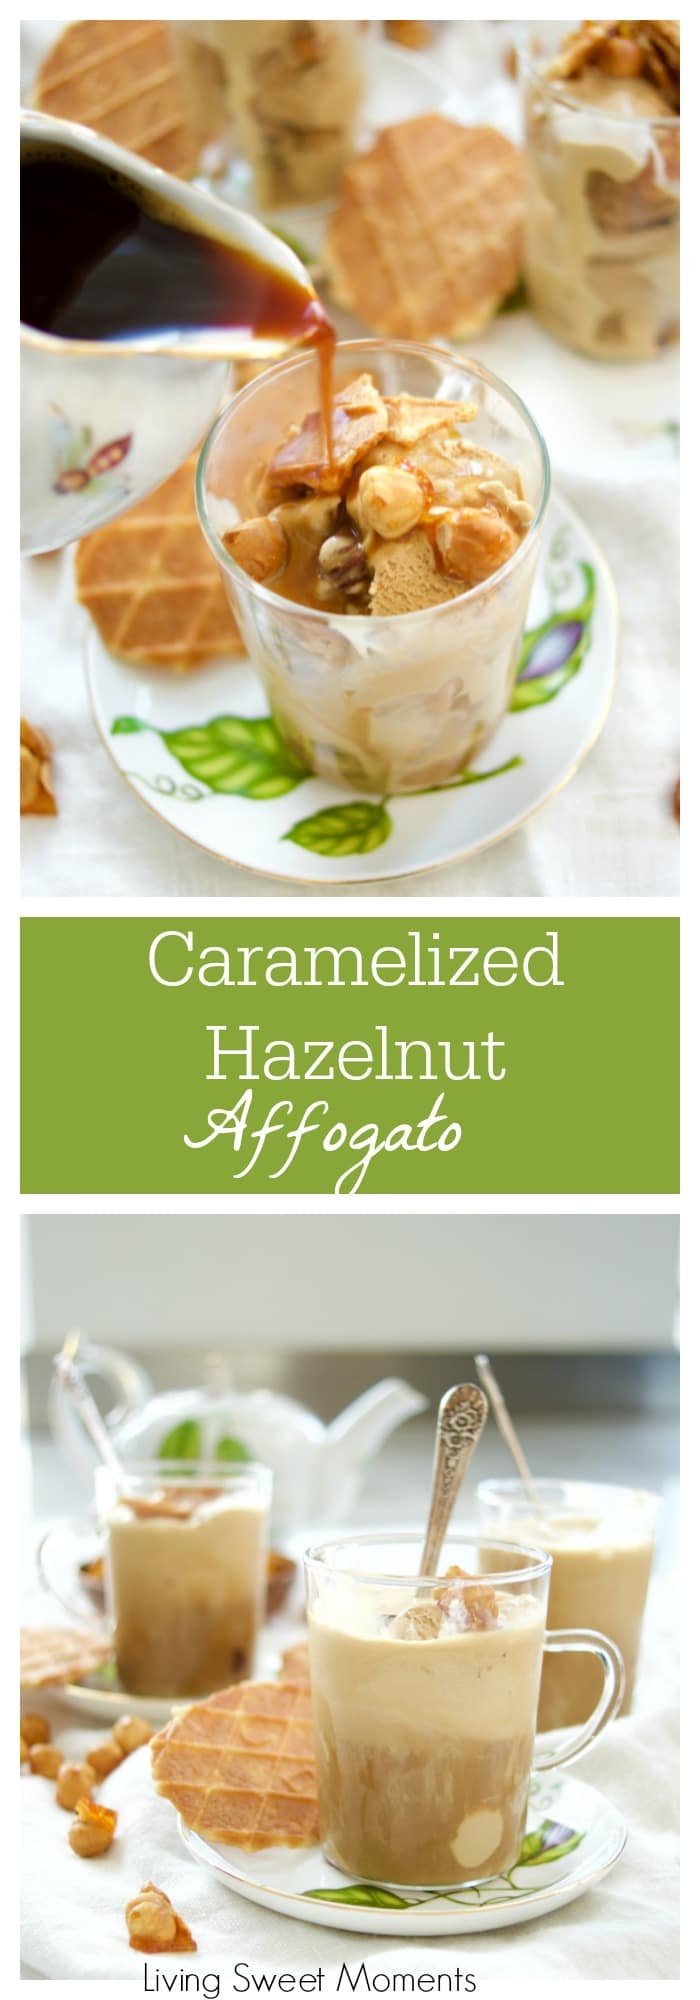 This delicious Affogato recipe is made with caramelized hazelnuts, hazelnut ice cream, and instant coffee for a delicious no bake dessert idea.